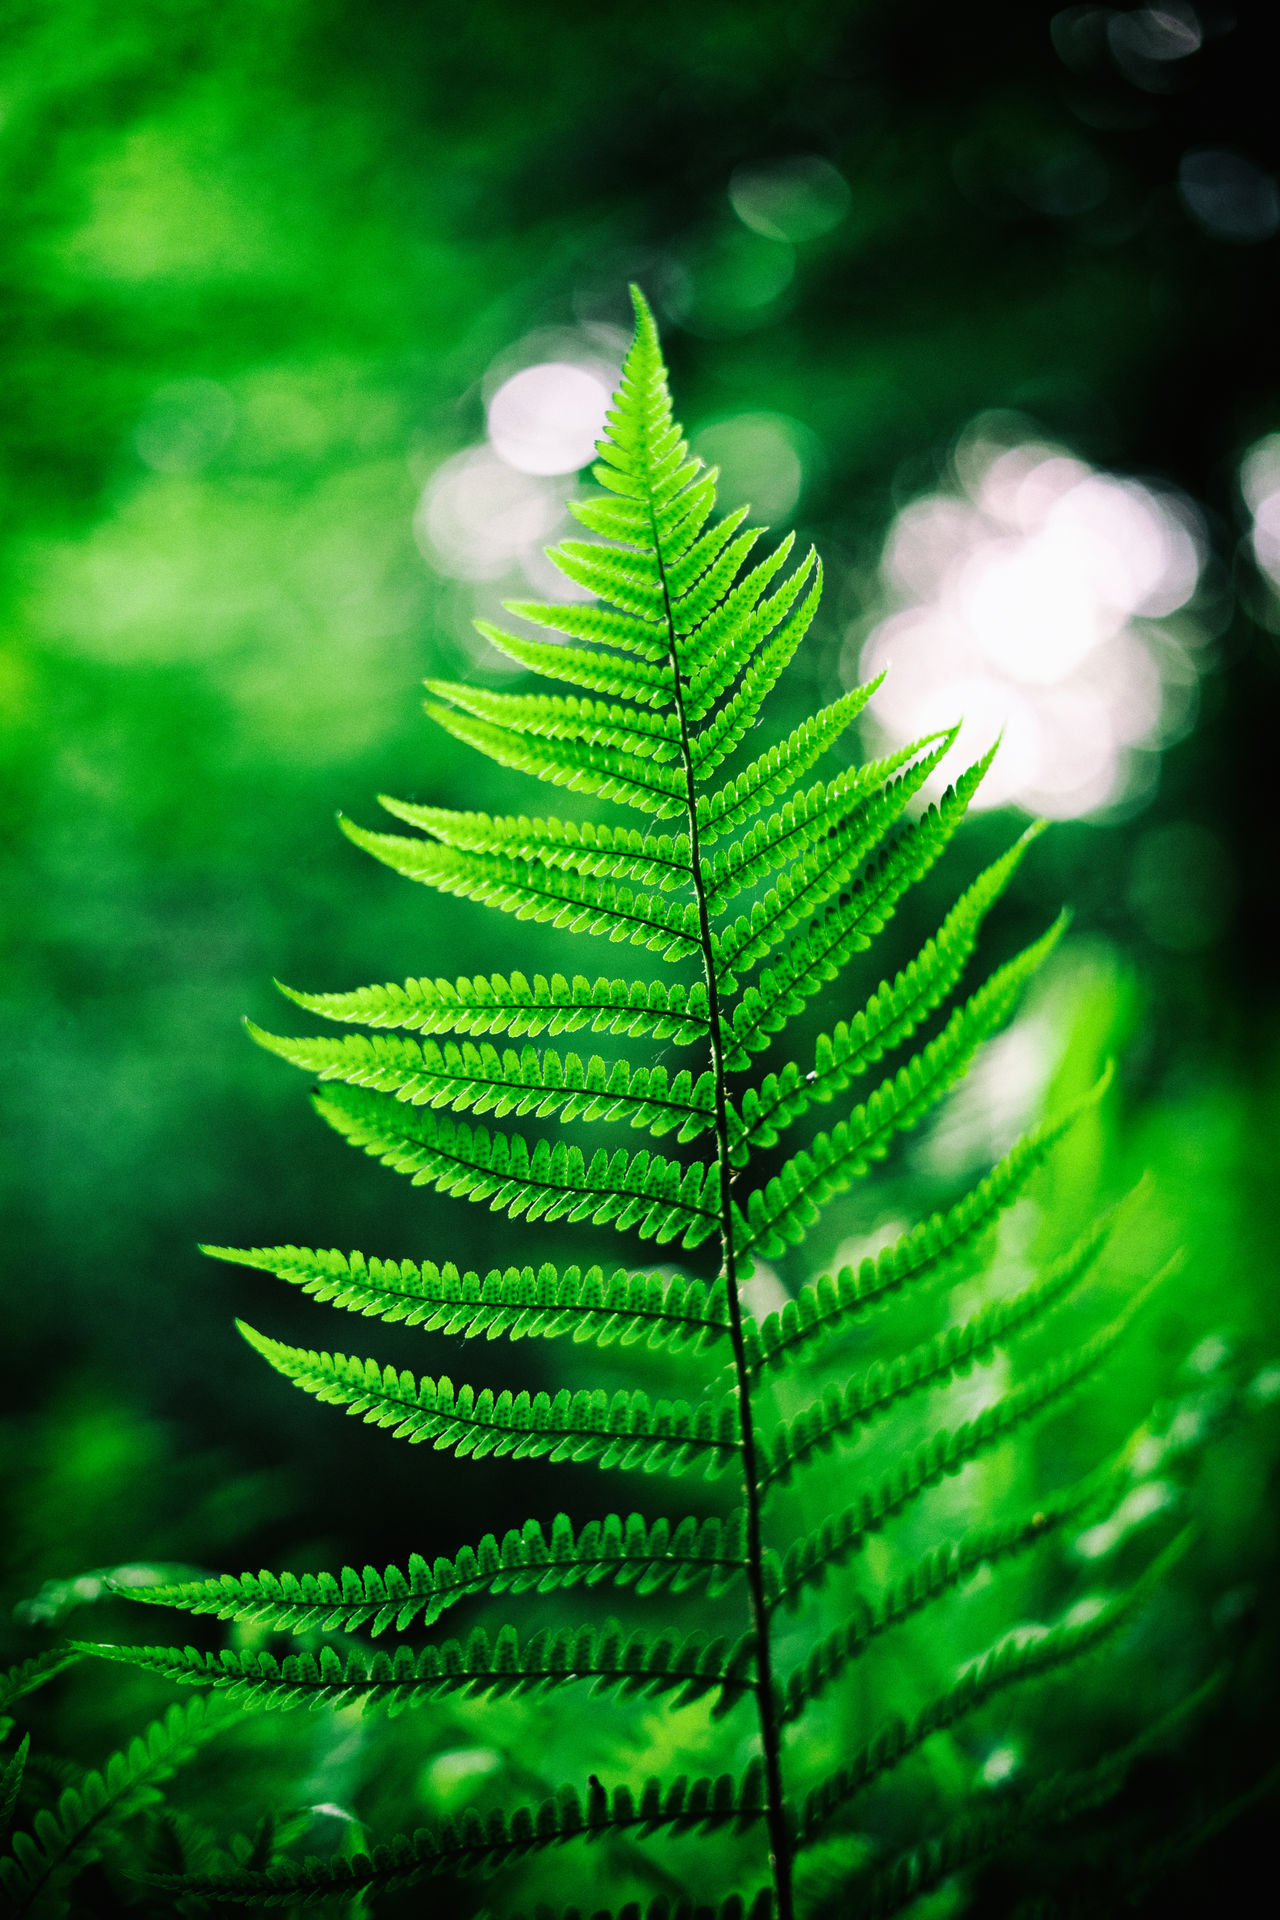 Beauty In Nature Close-up Day Fern Focus On Foreground Forest Freshness Green Green Color Growth Leaf Nature No People Outdoors Plant Selective Focus